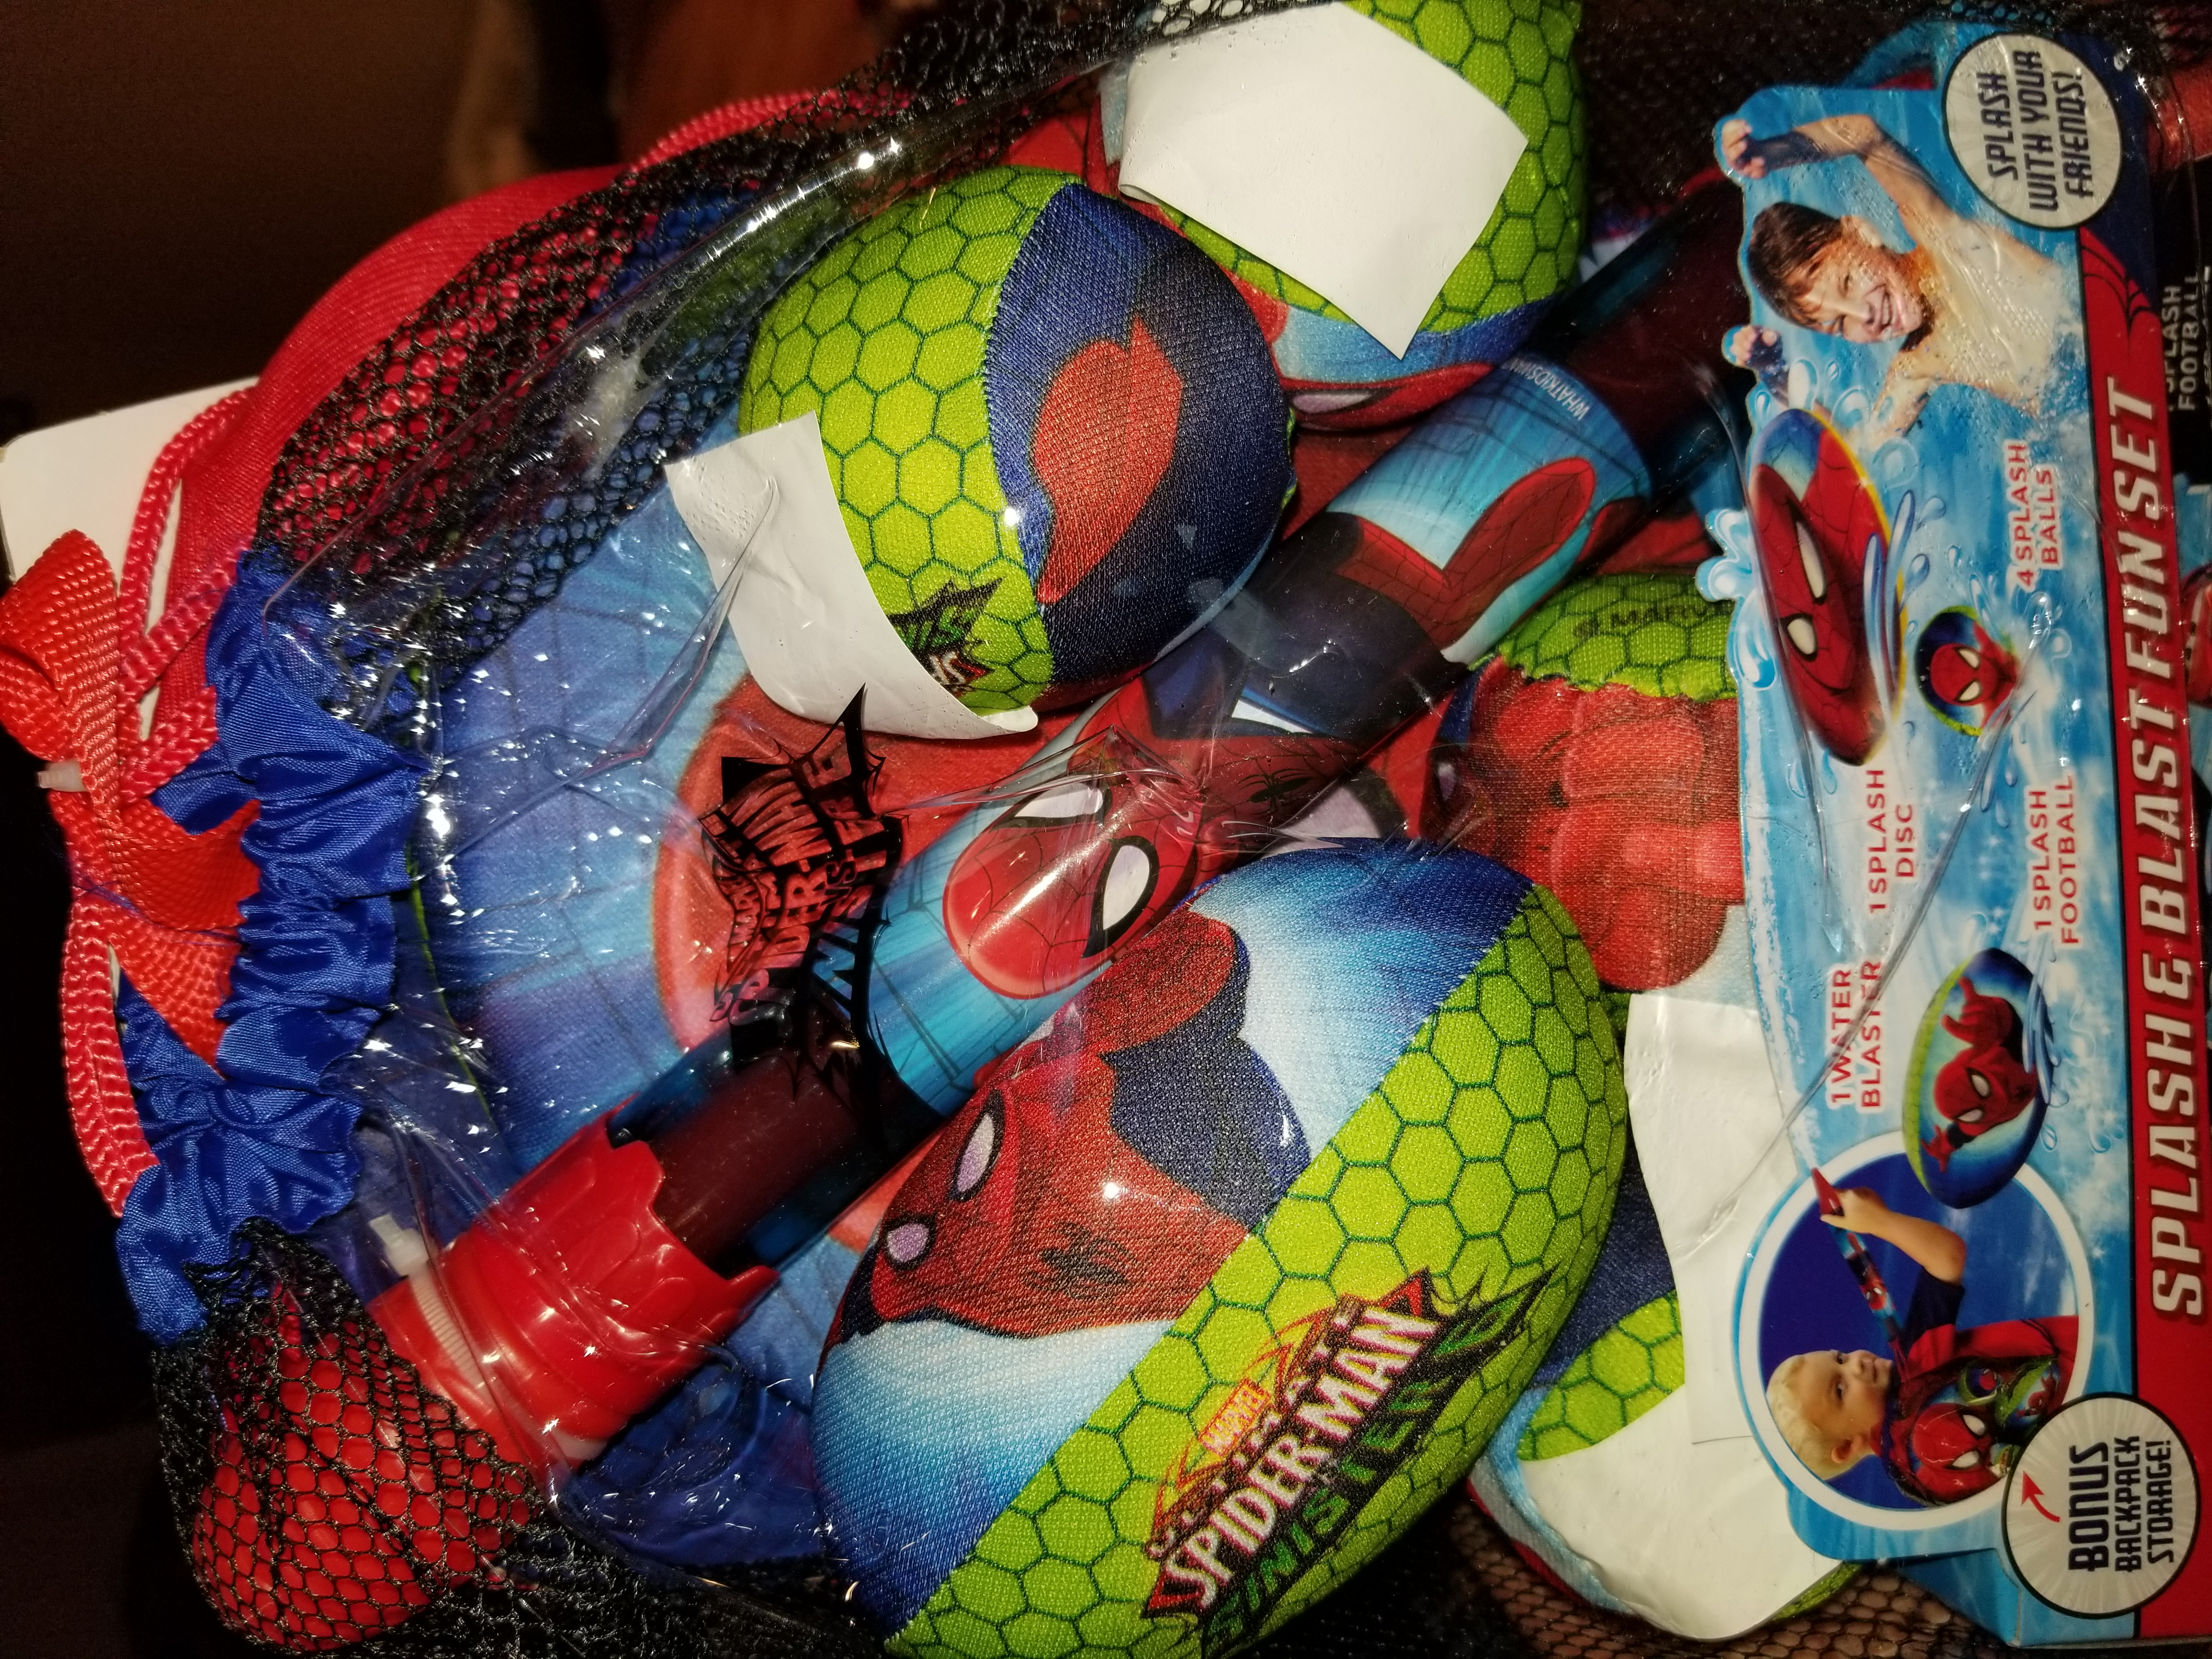 Spiderman splash and blast fun set